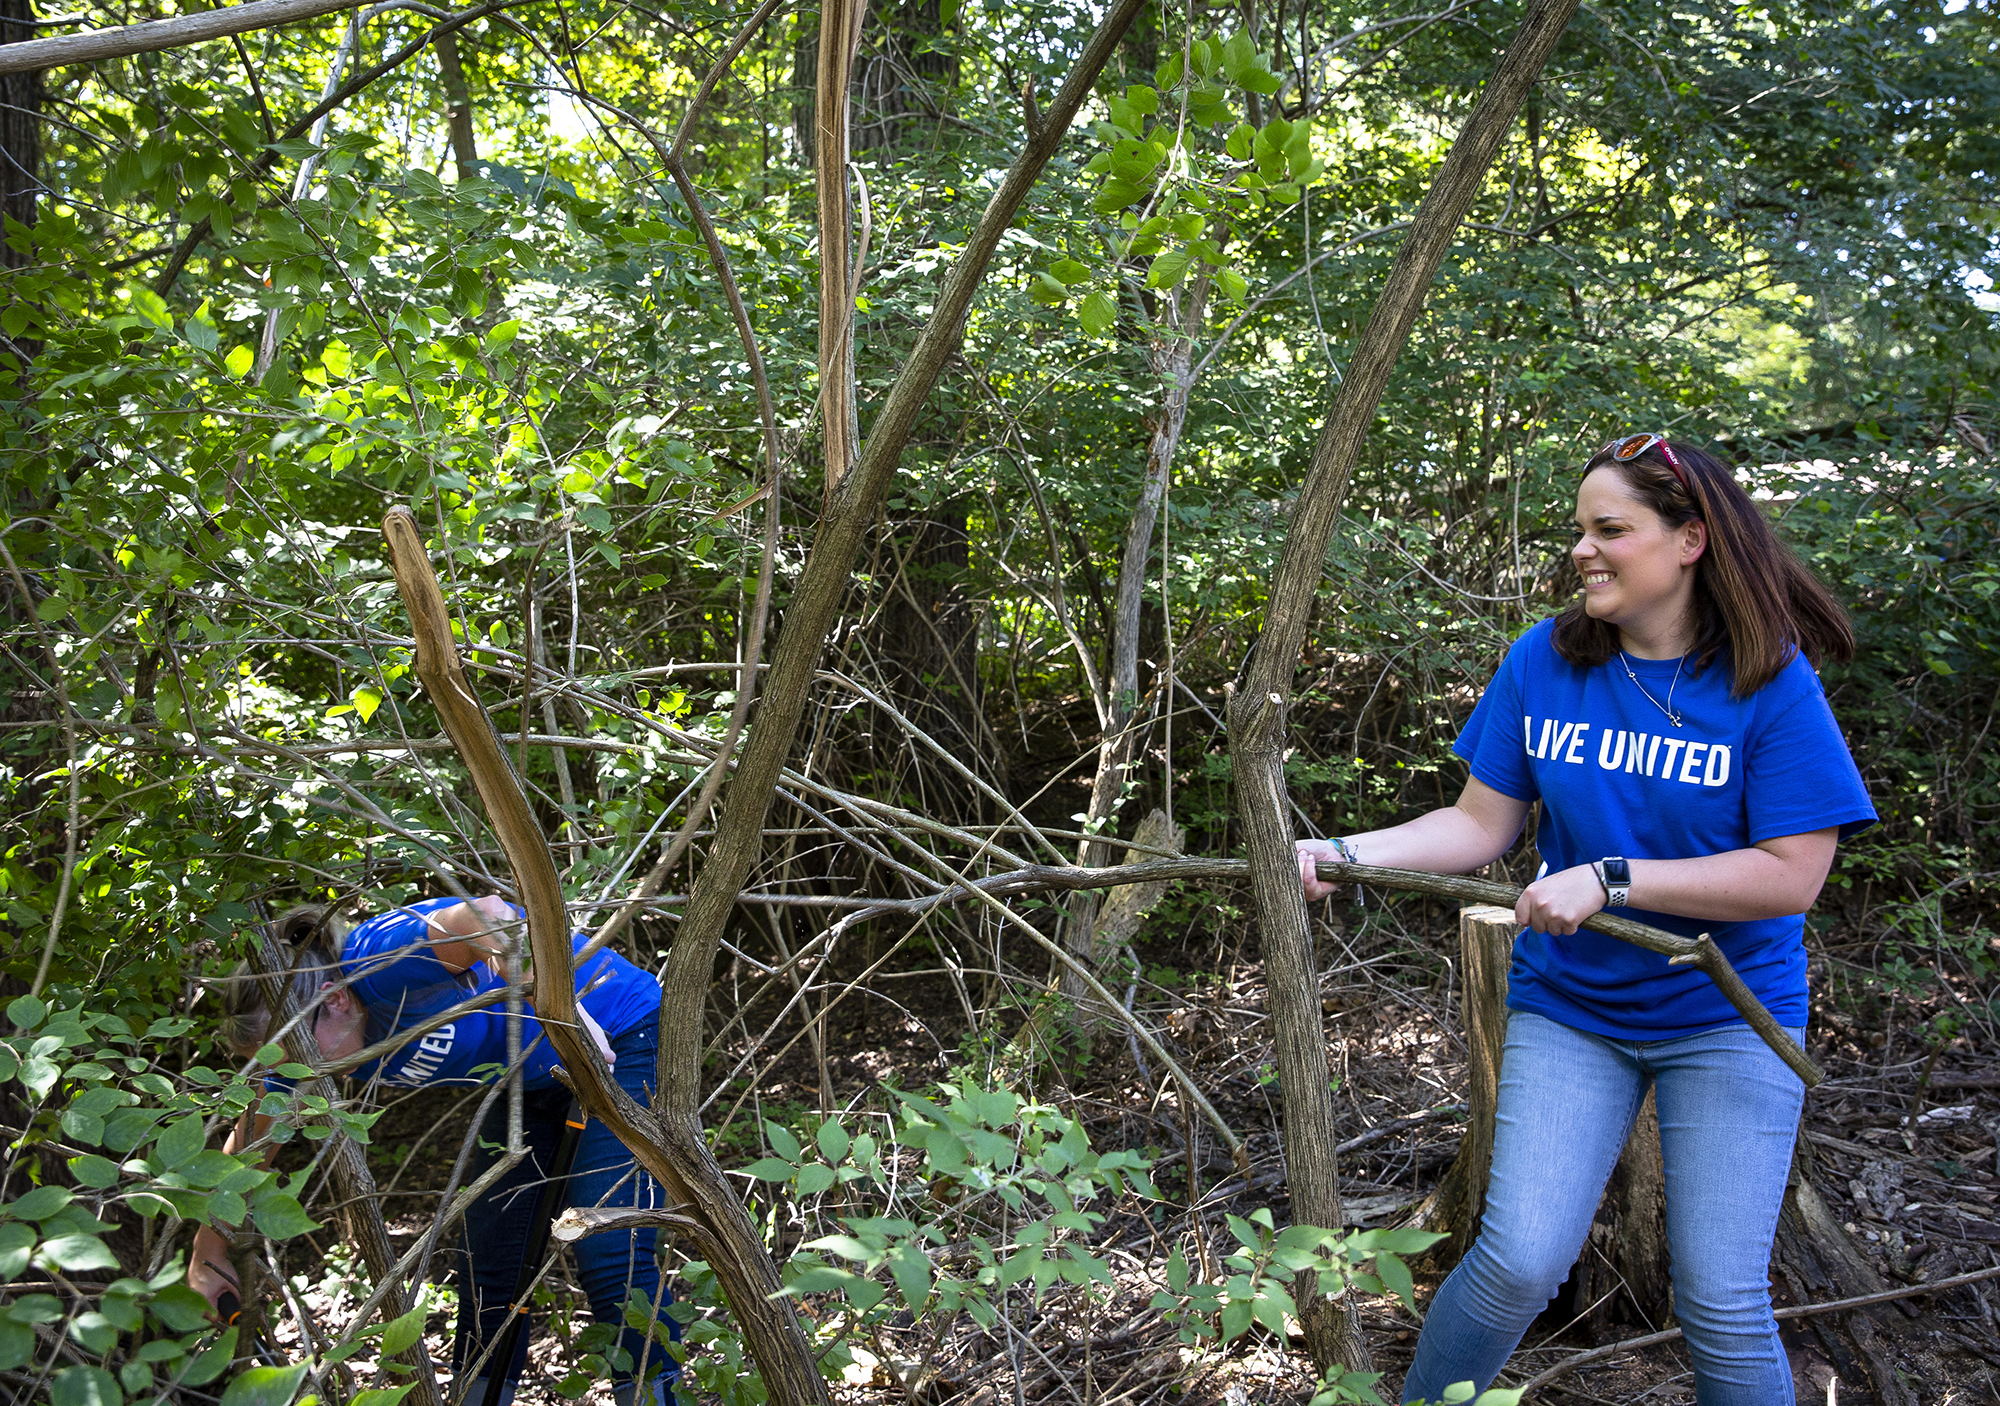 Valerie Watson tugs on a branch that had been cut by Rae Jones, left, during the United Way of Central Illinois's annual Day of Action Friday, Sept. 14, 2018 at Henson Robinson Zoo in Springfield, Ill. Watson and Jones, both employees of Blue Cross Blue Shield, were part of a group of 20 volunteers from BCBS and Wells Fargo who cleared brush from an area near the bear exhibit at the zoo. City-wide, nearly 250 volunteers lent a hand on 26 different service projects. [Rich Saal/The State Journal-Register]